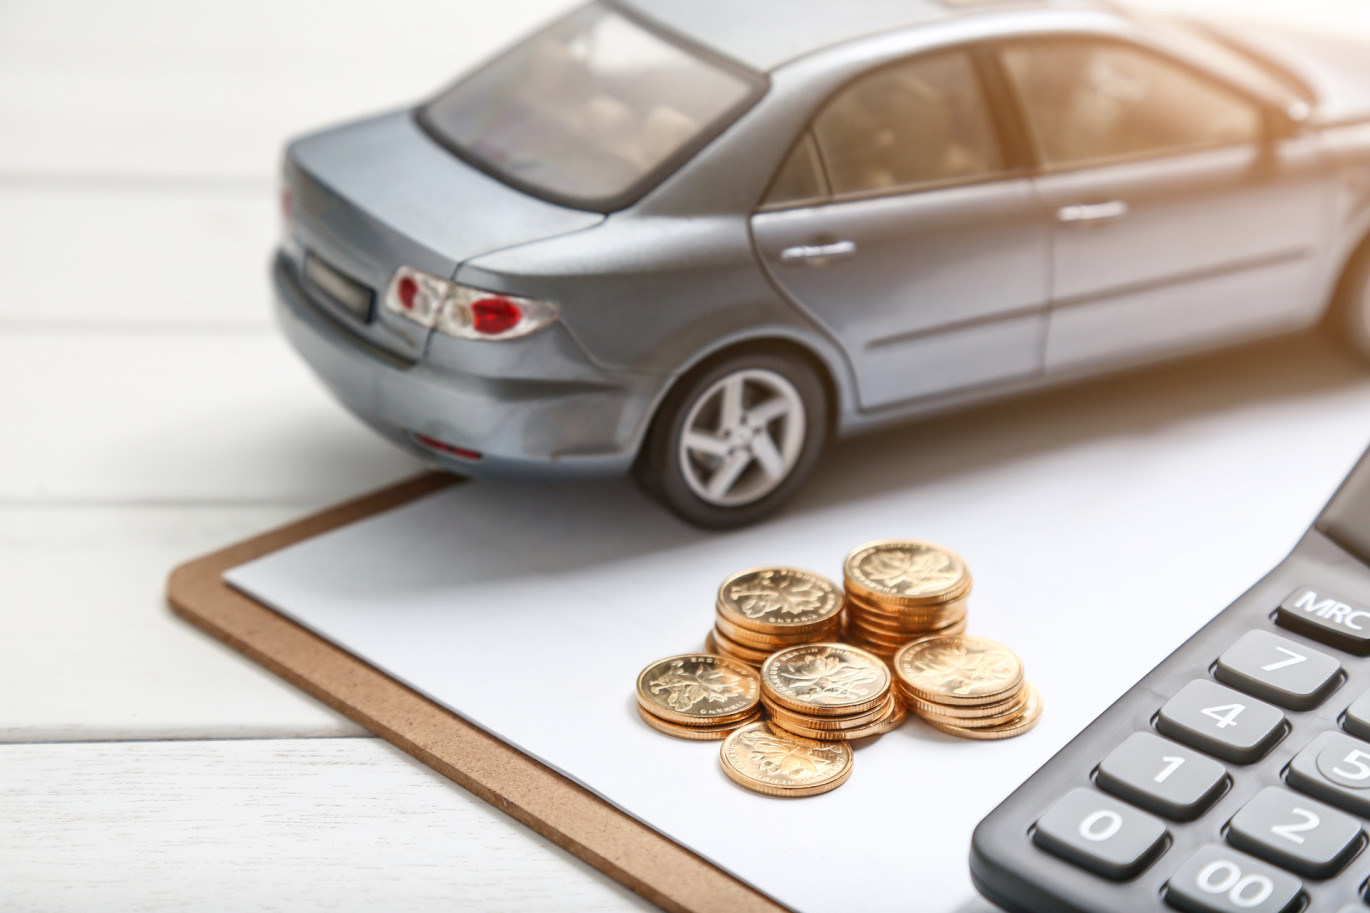 8db6d30b610 Looking for a car that won't cost you an arm and a leg to run? We've  compiled a list of the cheapest cars to run. This list includes some of the  most ...